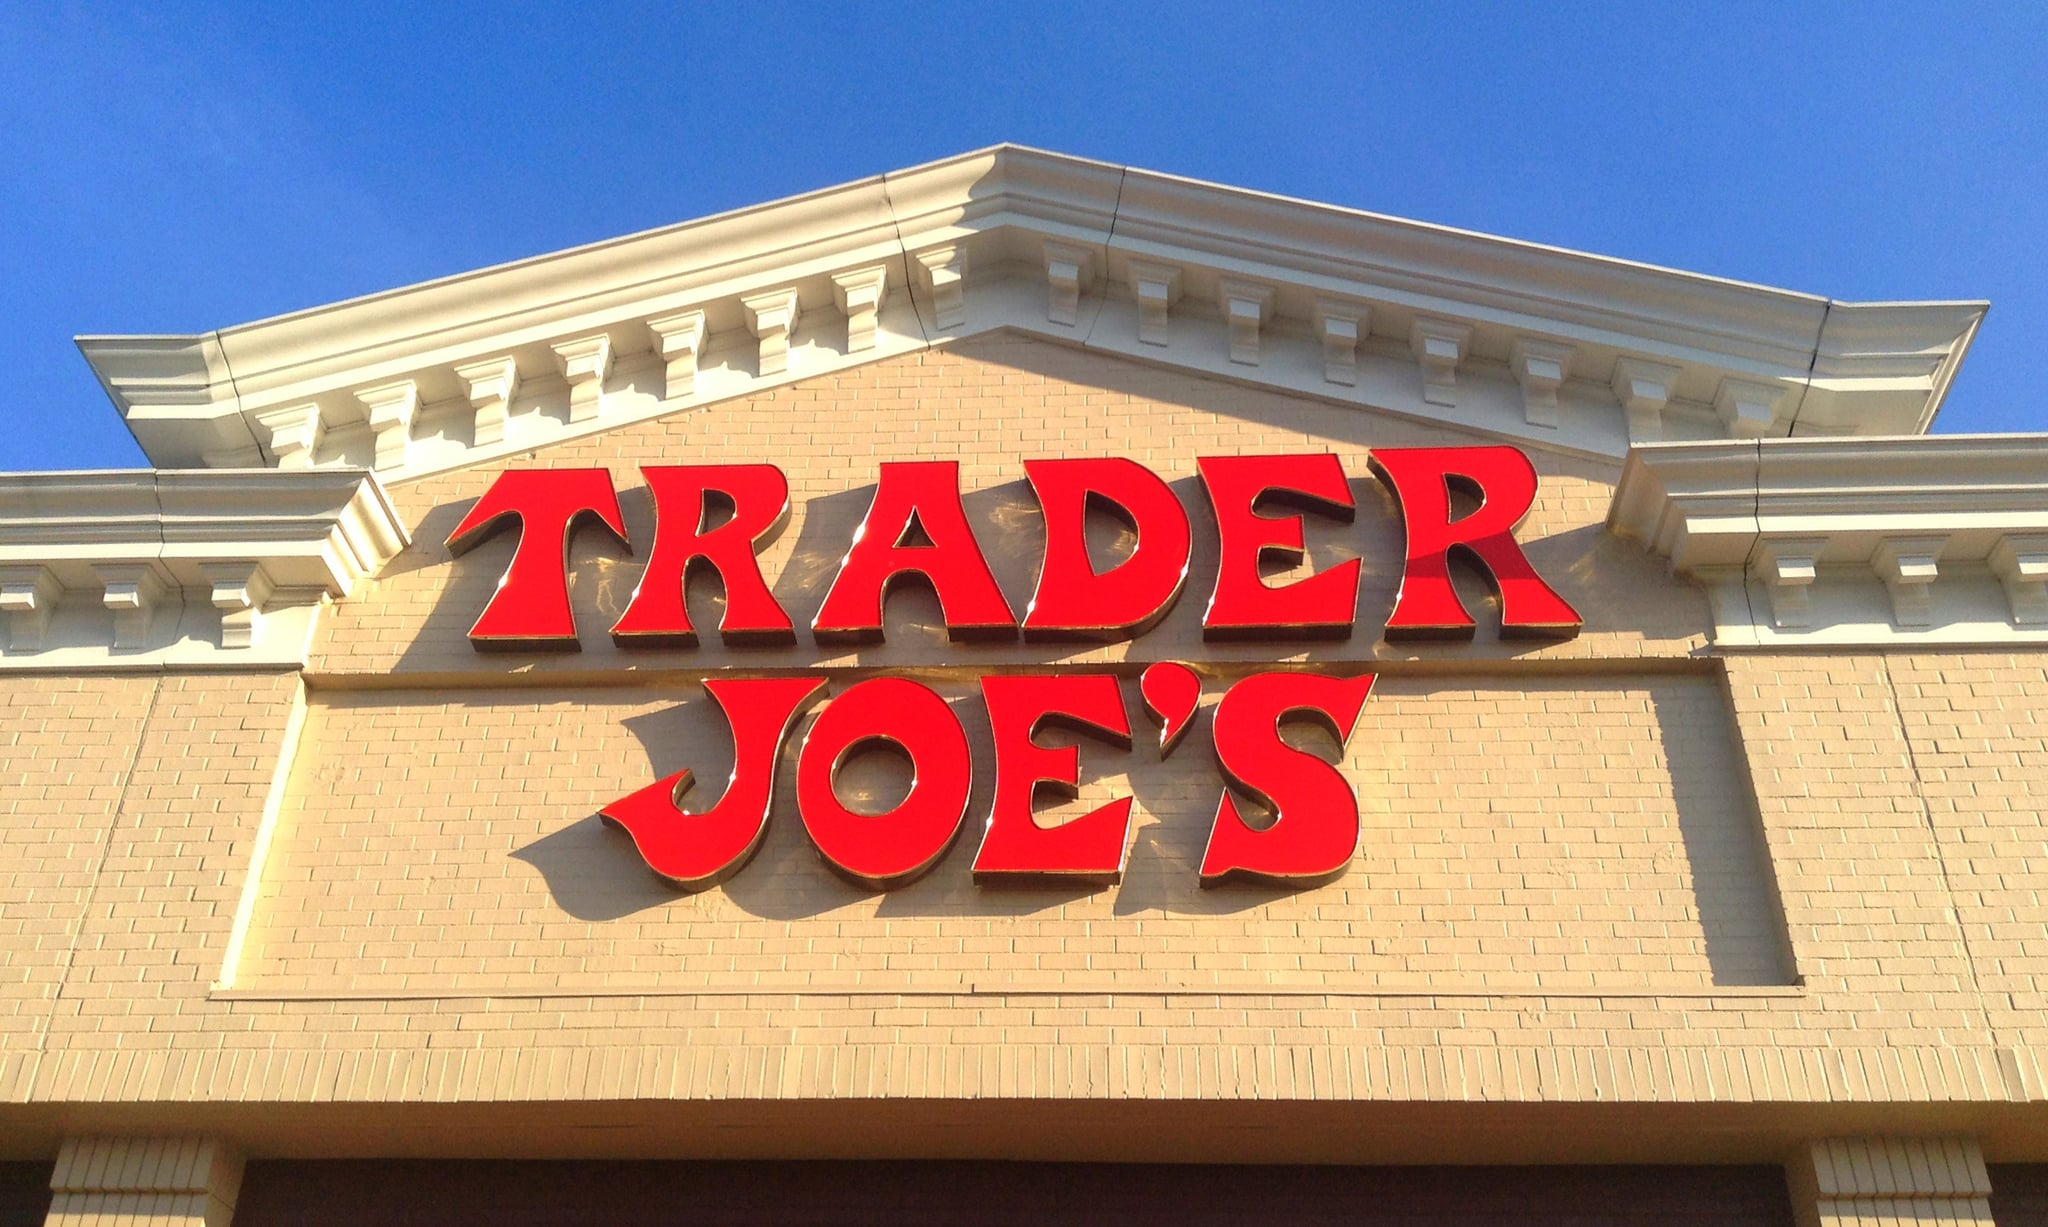 PopsugarLivingBudget TipsHow to Save Money at Trader Joe's9 Ways to Save Major Money at Trader Joe'sMay 12, 2016 by Brinton Parker2.2K SharesChat with us on Facebook Messenger. Learn what's trending across POPSUGAR.Everybody's got a favorite snack from Trader Joe's. Whether it's spicy or sweet, you don't want to sacrifice your top choice of treats simply because the cost is high! Instead of skipping out on scrumptious food, simply follow these tips to drastically lower your next Trader Joe's grocery bill: Surprise! You can use coupons: Many people are unaware that Trader Joe's accepts manufacturer coupons for name-brand items. While you won't find coupons for Trader Joe's-brand cookies, you can clip or print them for things like Annie's Natural products and Lärabars.Bring a bag: If you live in a city with a disposable bag tax, remembering to bring your own bags to TJ's can save a few dollars per trip. Some locations also offer shoppers the chance to win grocery gift cards if they bring a reusable shopping ba - 웹